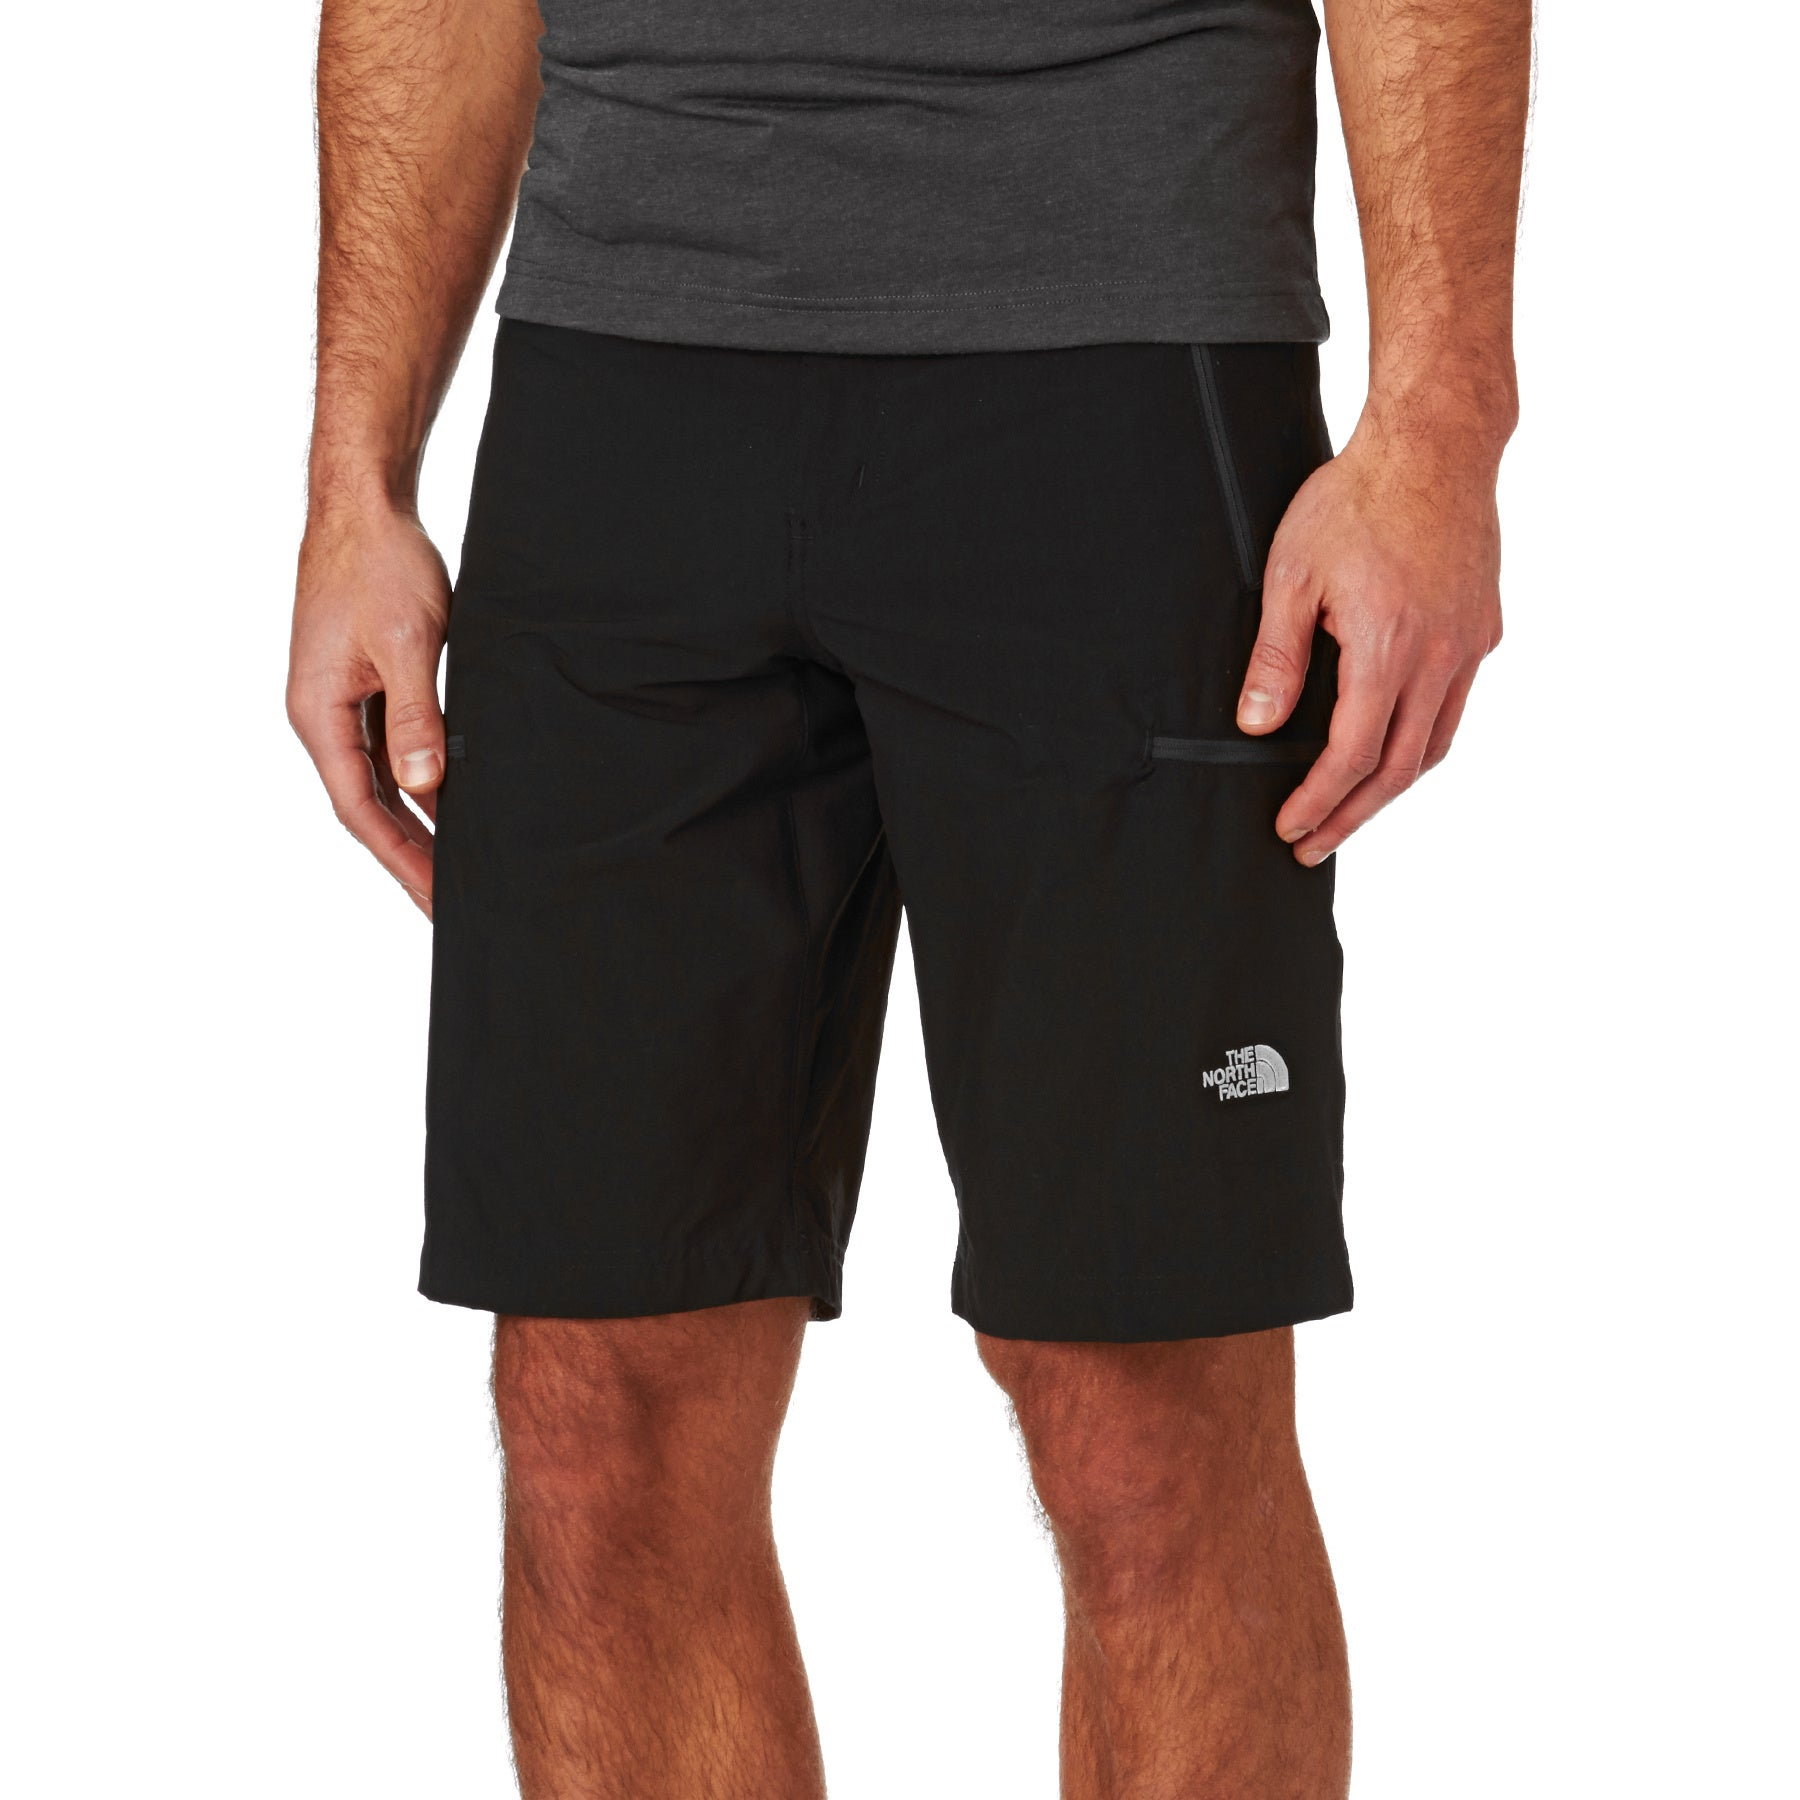 North Face Exploration Cargo Walk Shorts - Black